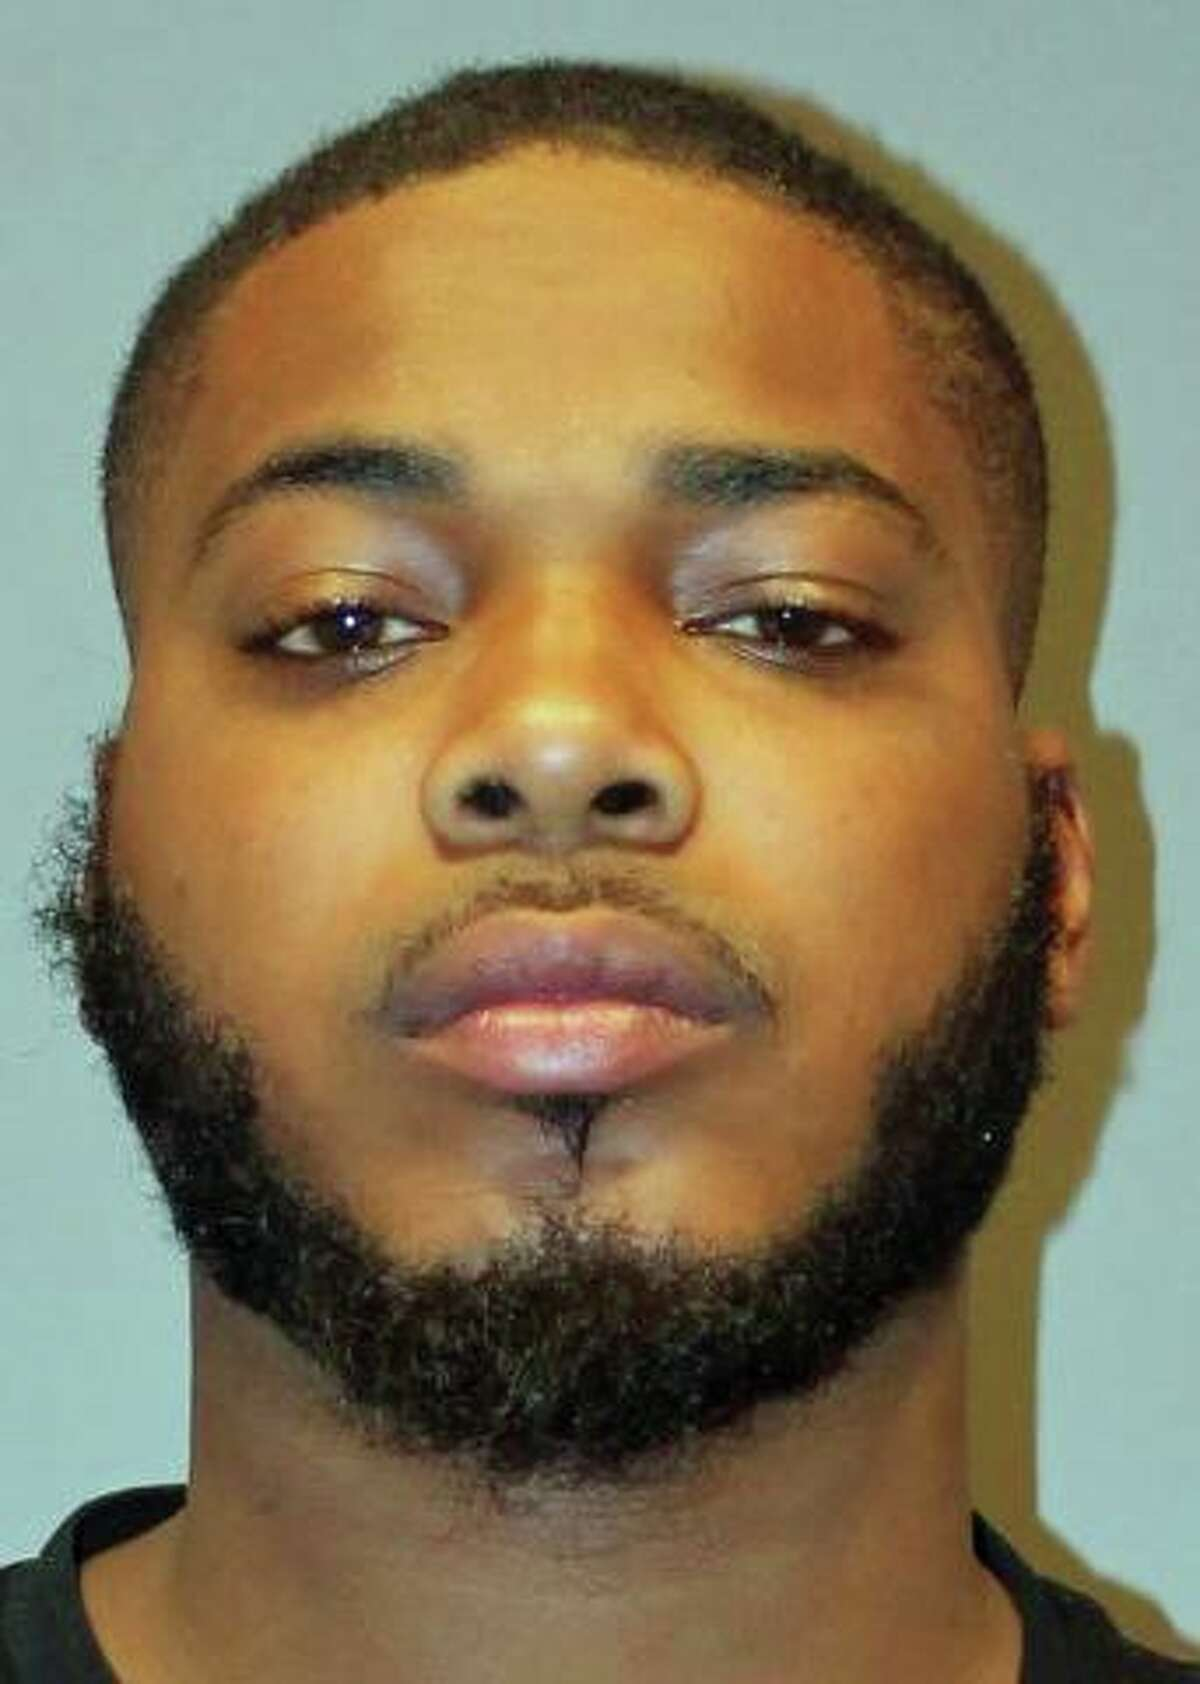 Brandyn Grant-Ford, of Stratford, is on trial charged with the murder of Andre Pettway, 29, of Bridgeport, on Saturday, May 27, 2017.